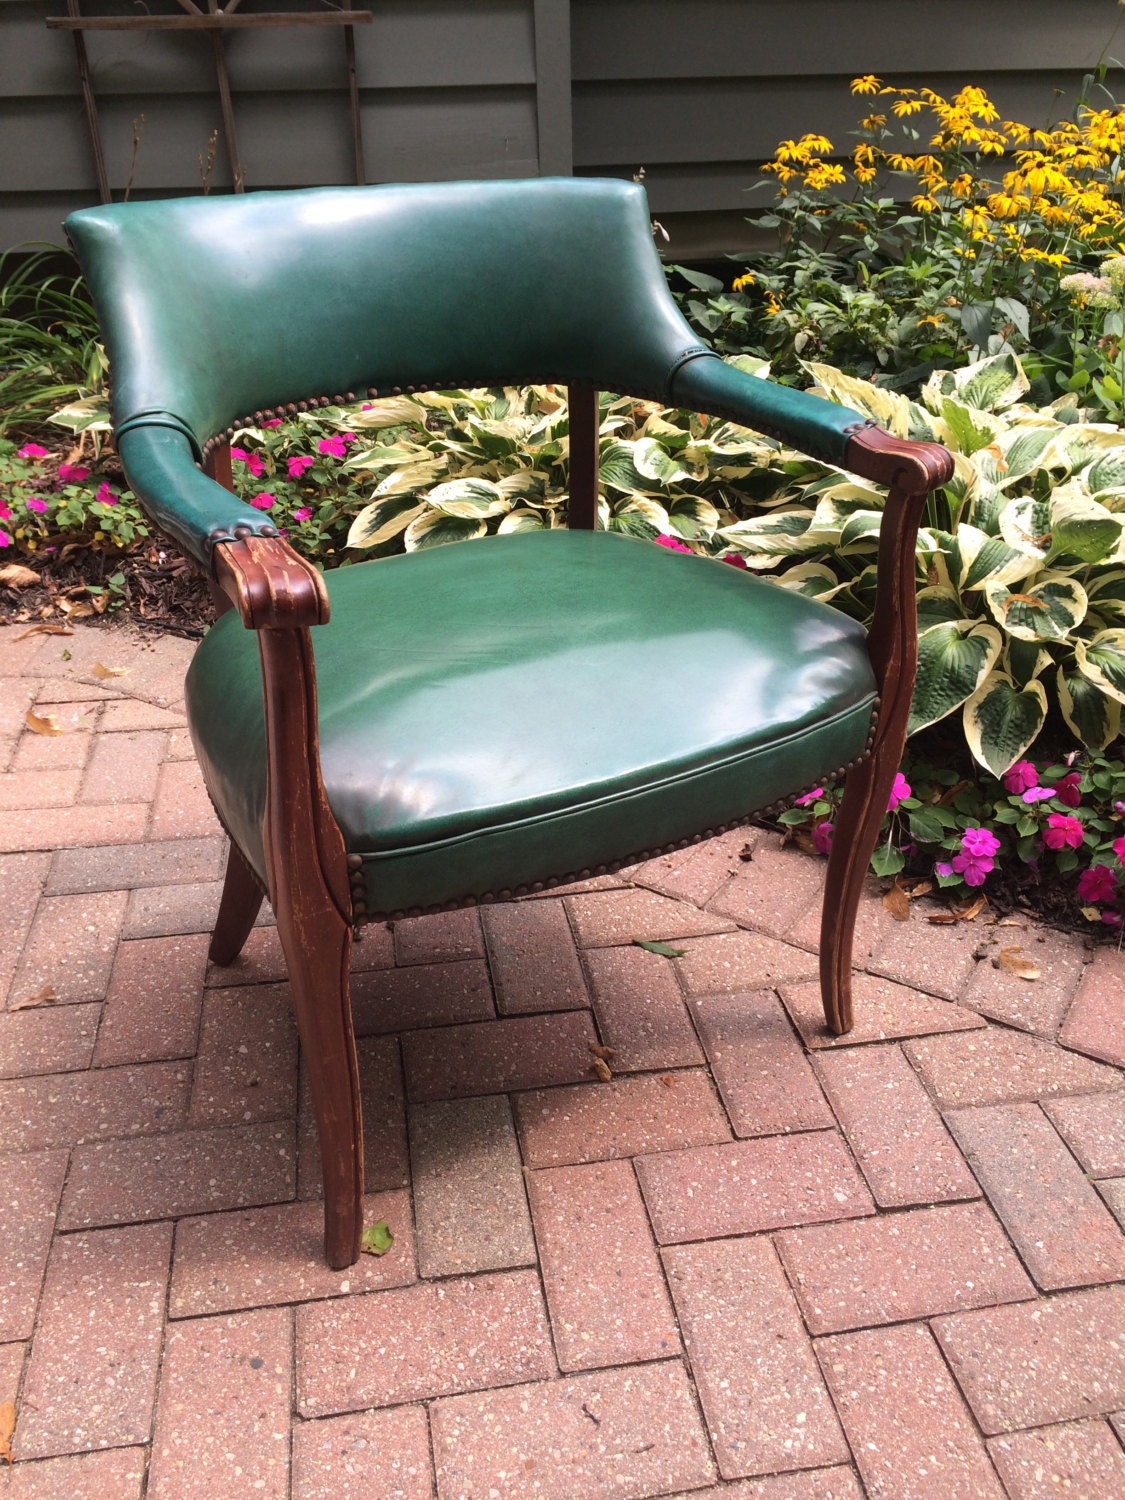 Vintage Emerald Green Naugahyde Upholstered Accent Arm Chair